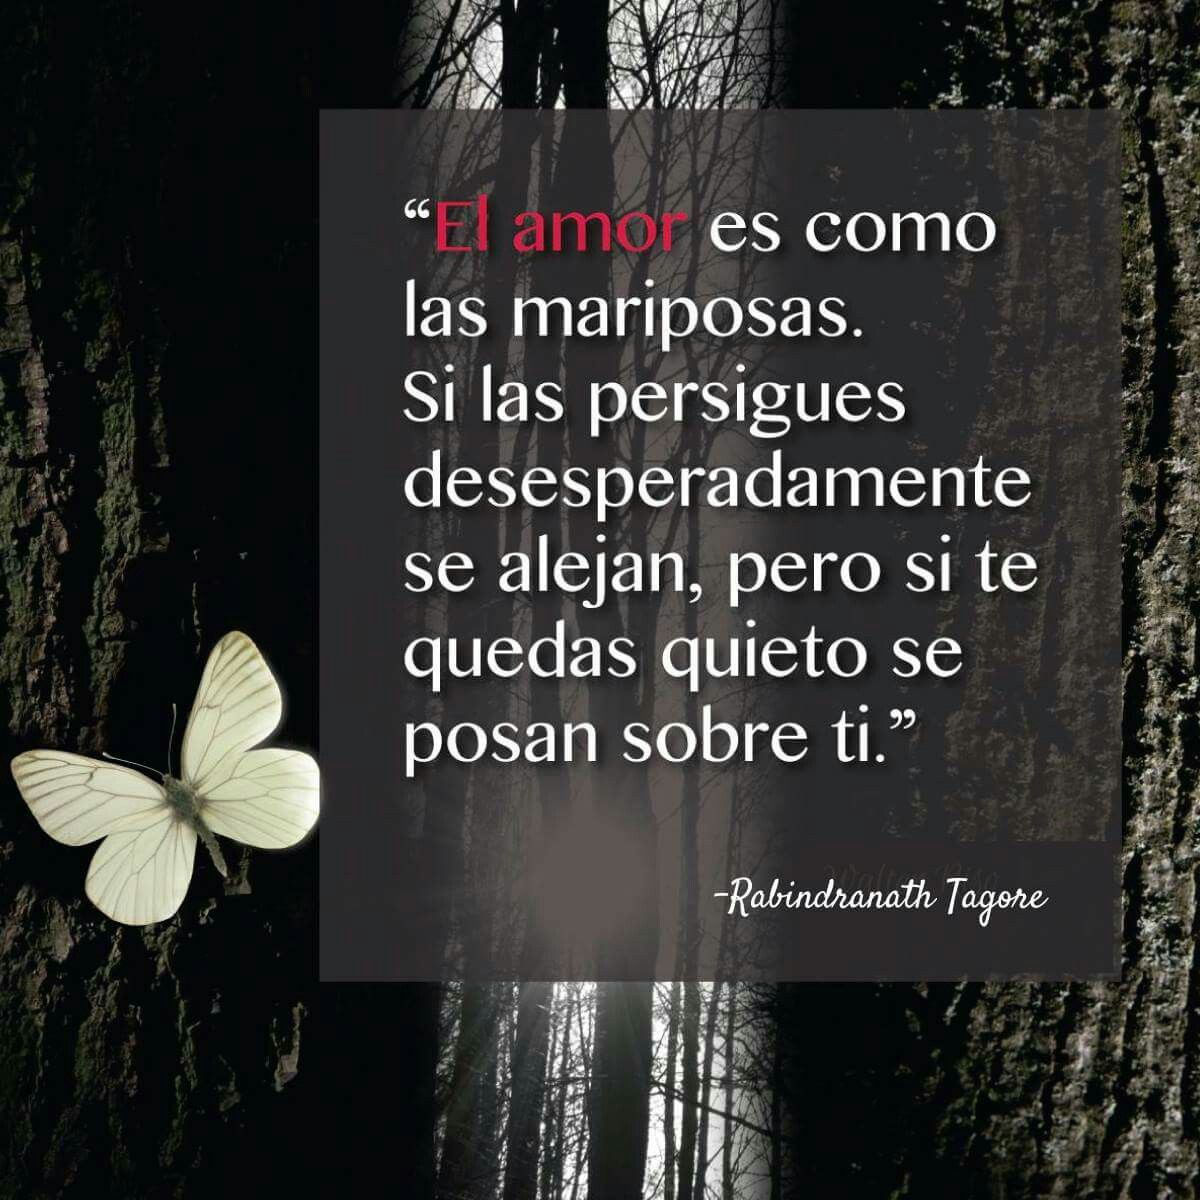 Spanish Quotes Best Quotes Wise Sayings Poetry Famous Taglines Inspirational Quotes Pretty Quotes Dating El Amor Es